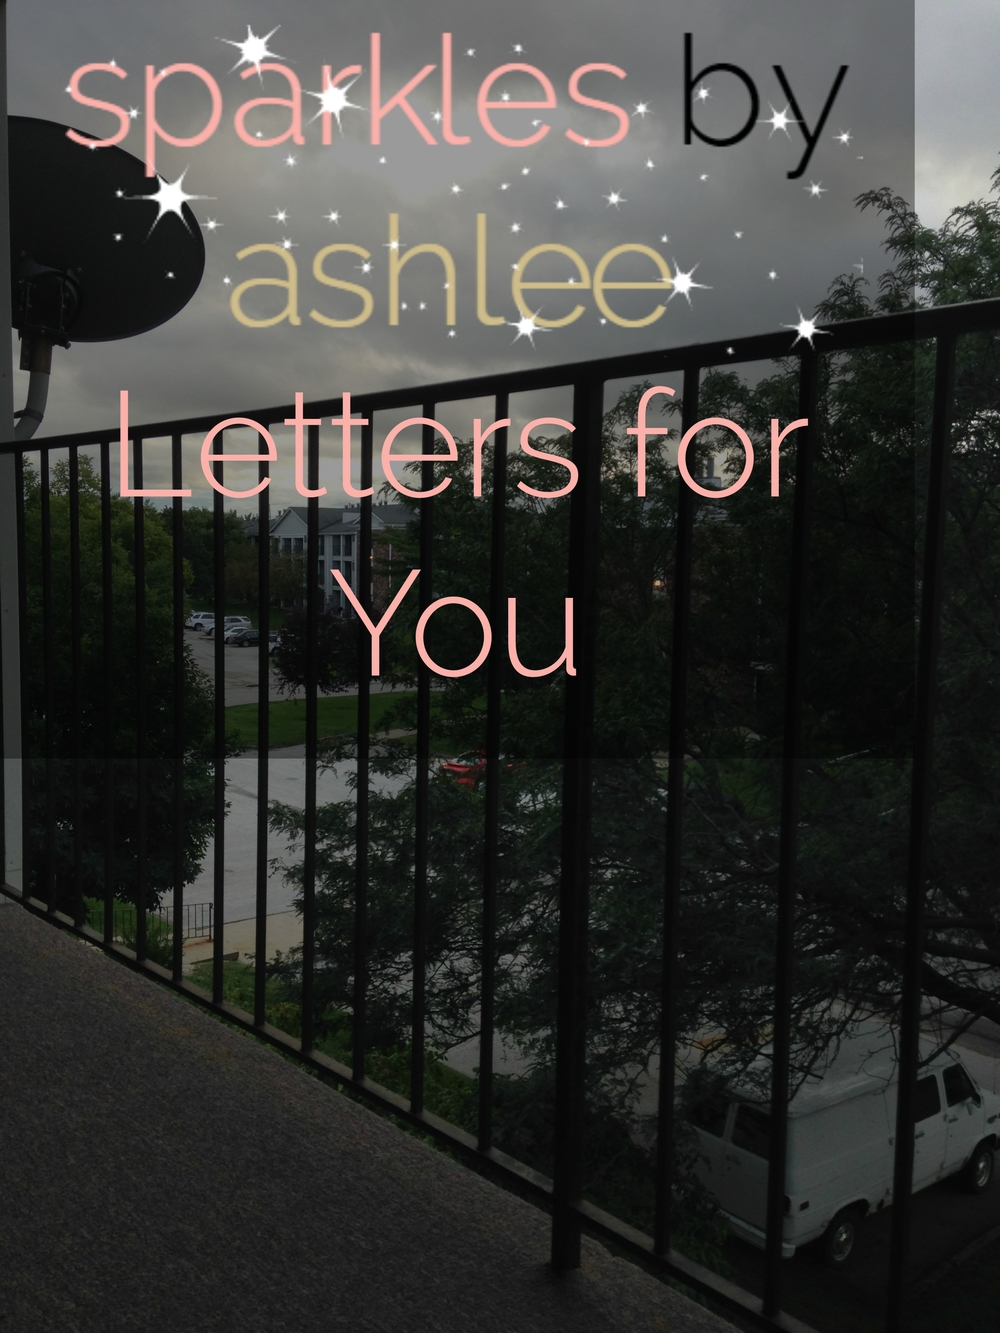 Letters-for-You-Sparkles-by-Ashlee.jpg